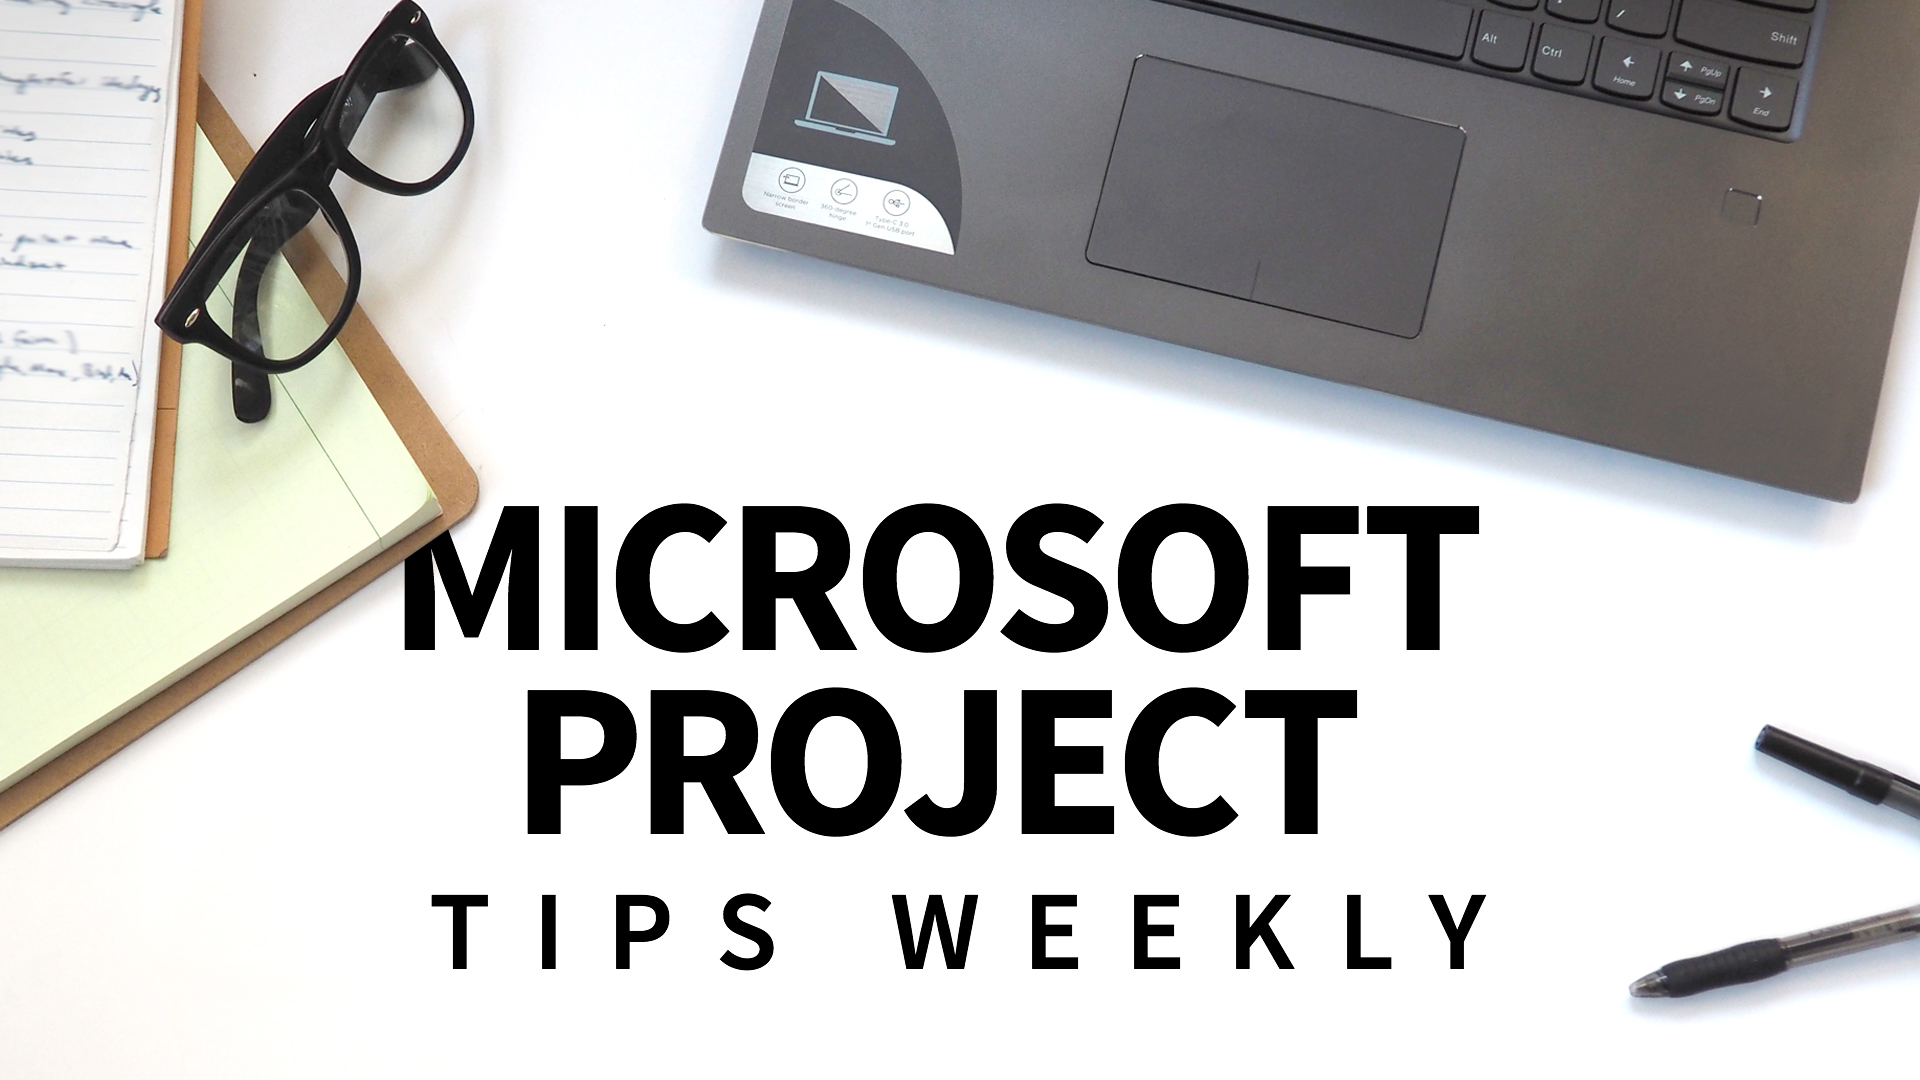 Display the Task Details form in the Details pane: Microsoft Project Tips Weekly